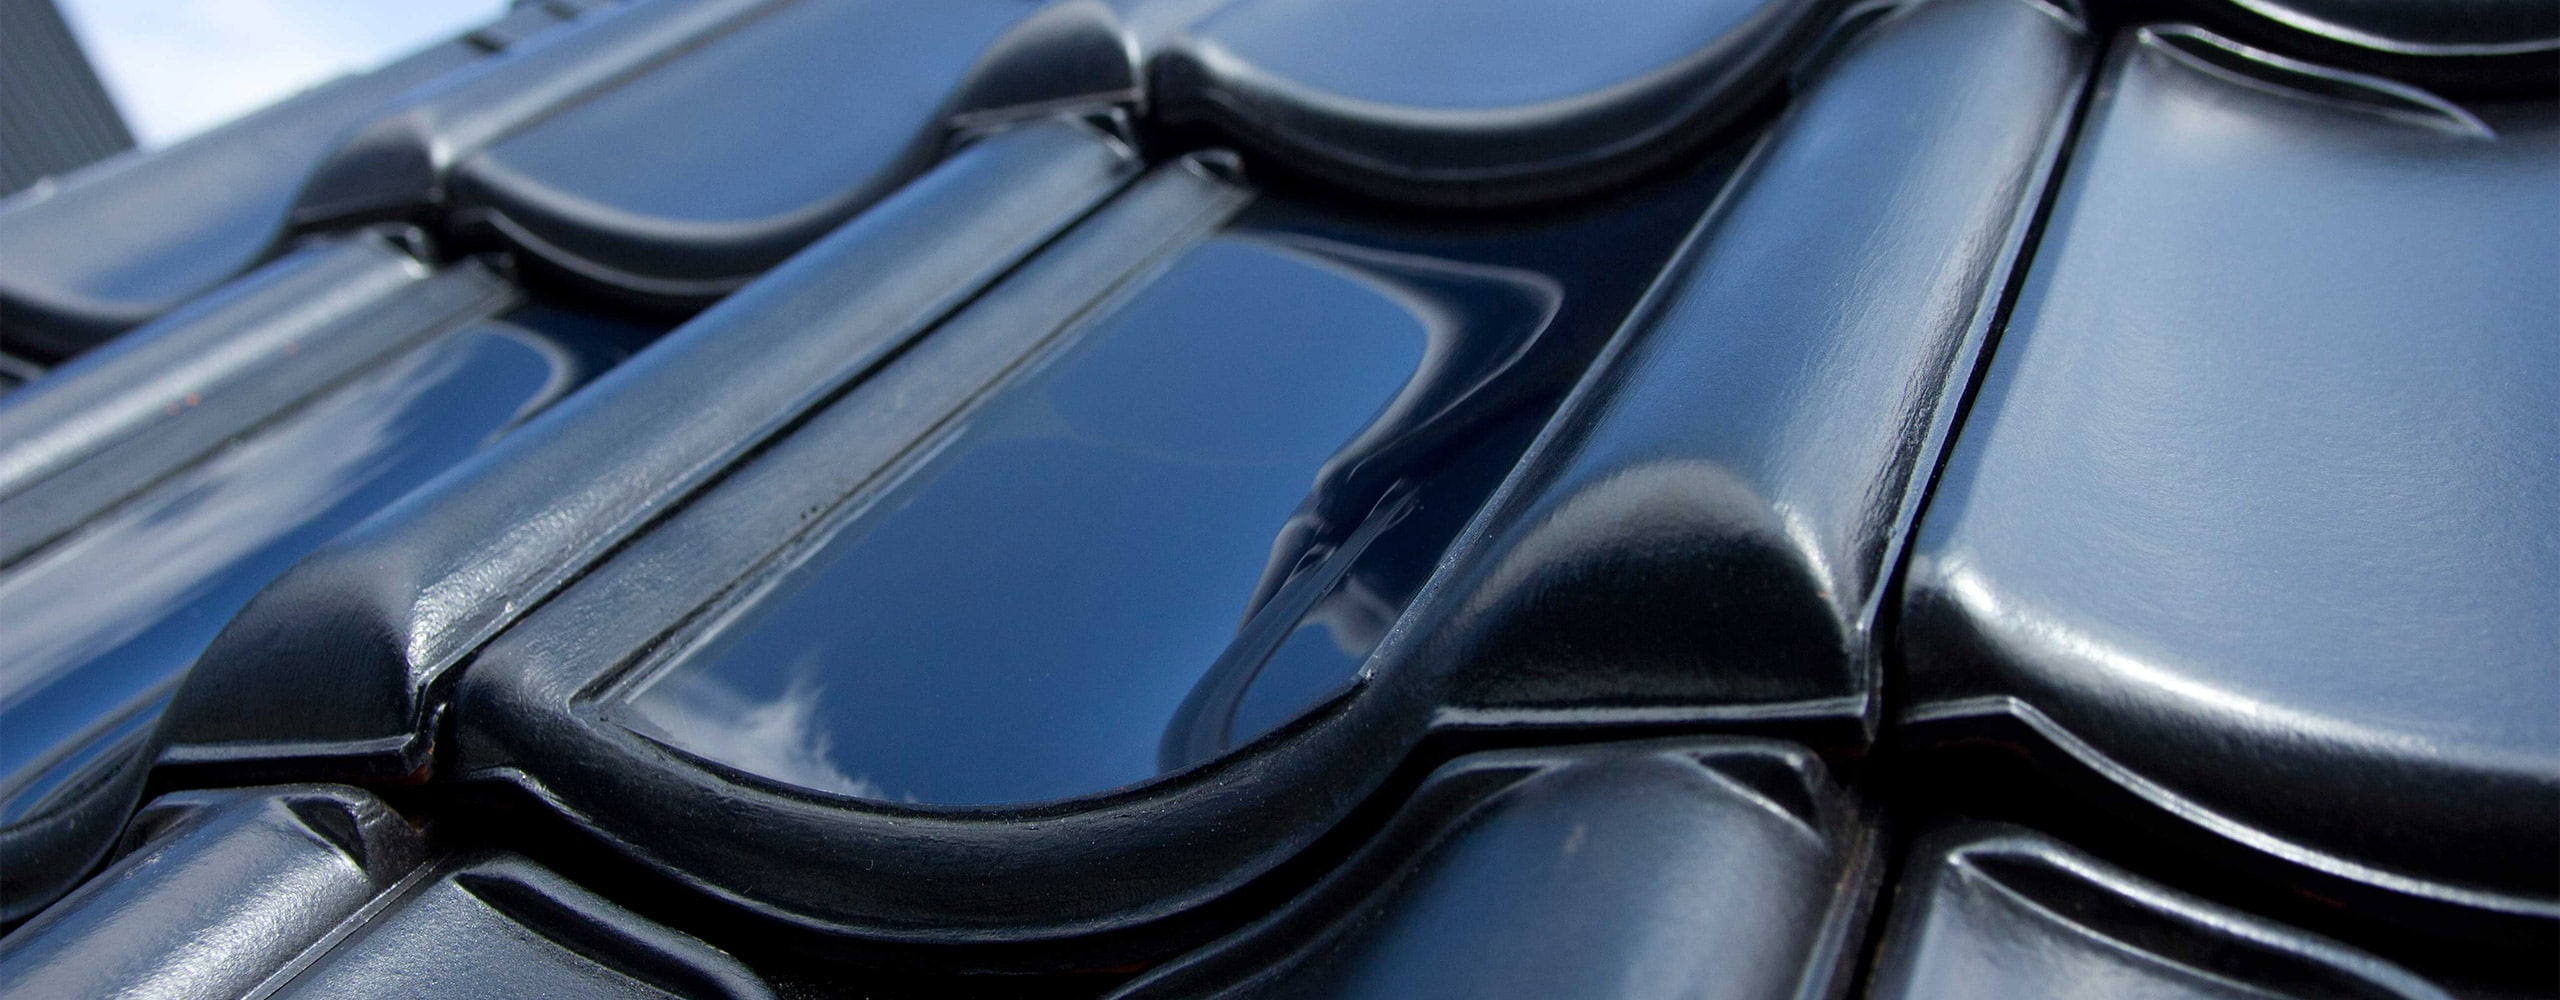 Solar roof tile the elegant source of power flexsol solutions solar roof tile dailygadgetfo Image collections